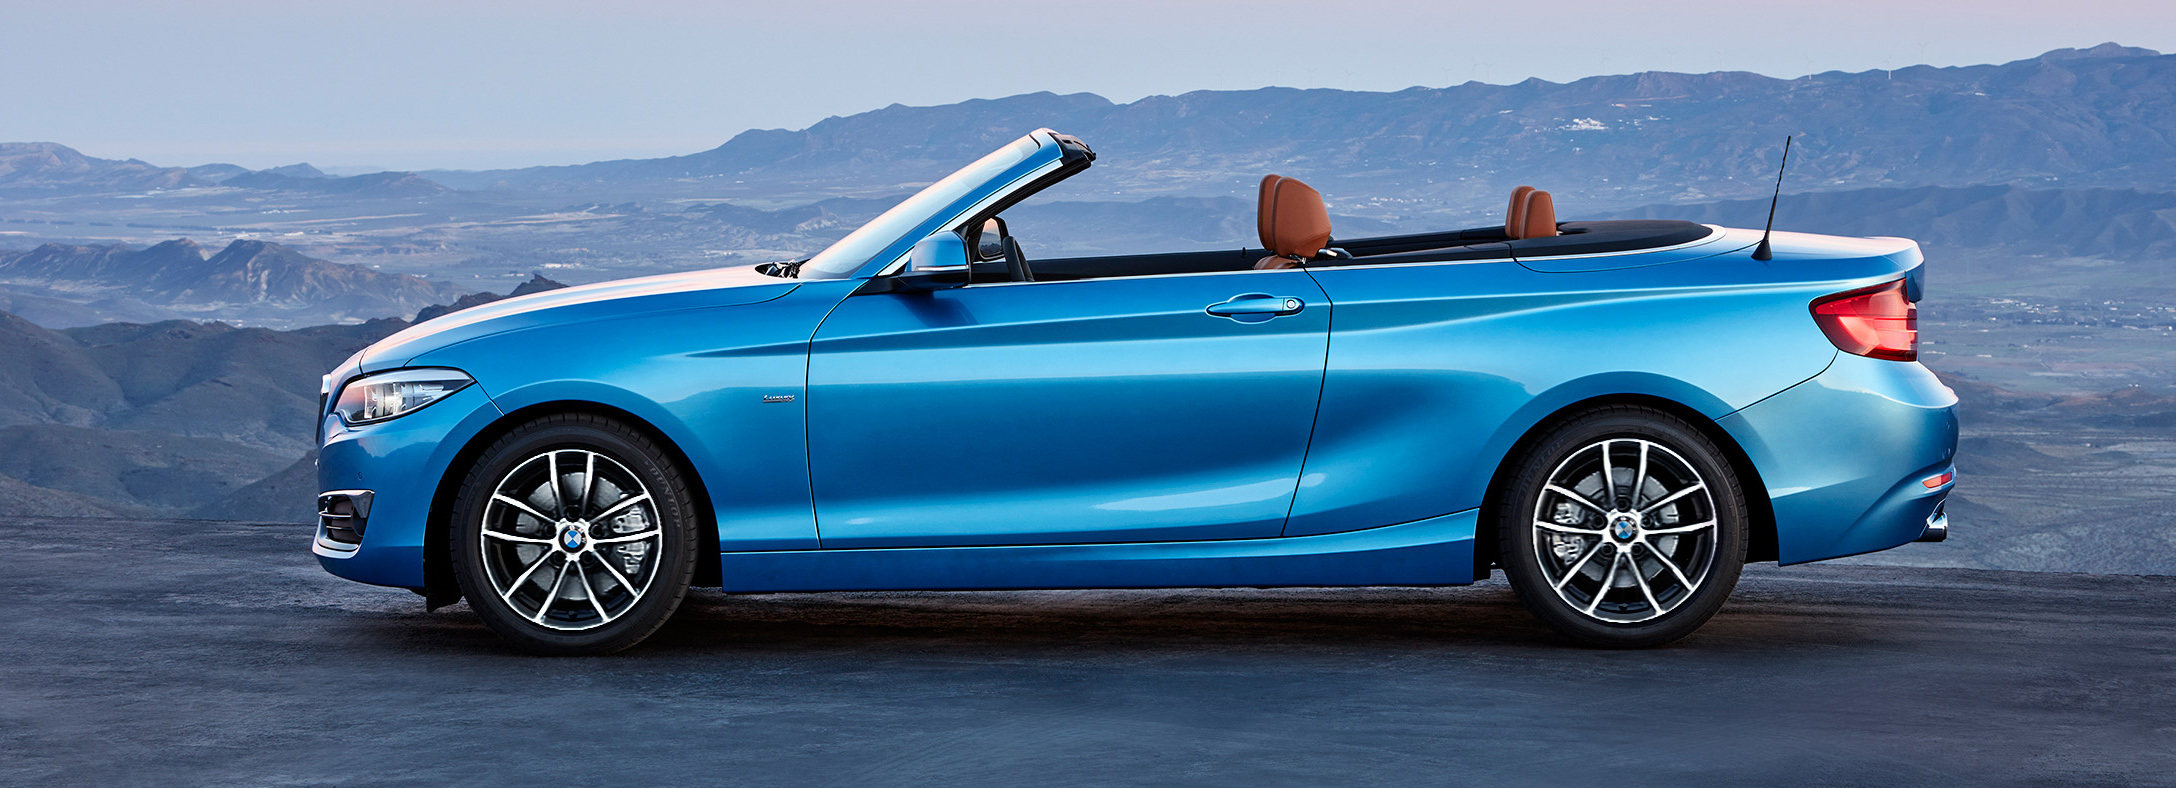 2018 bmw m240i convertible review best car site for. Black Bedroom Furniture Sets. Home Design Ideas